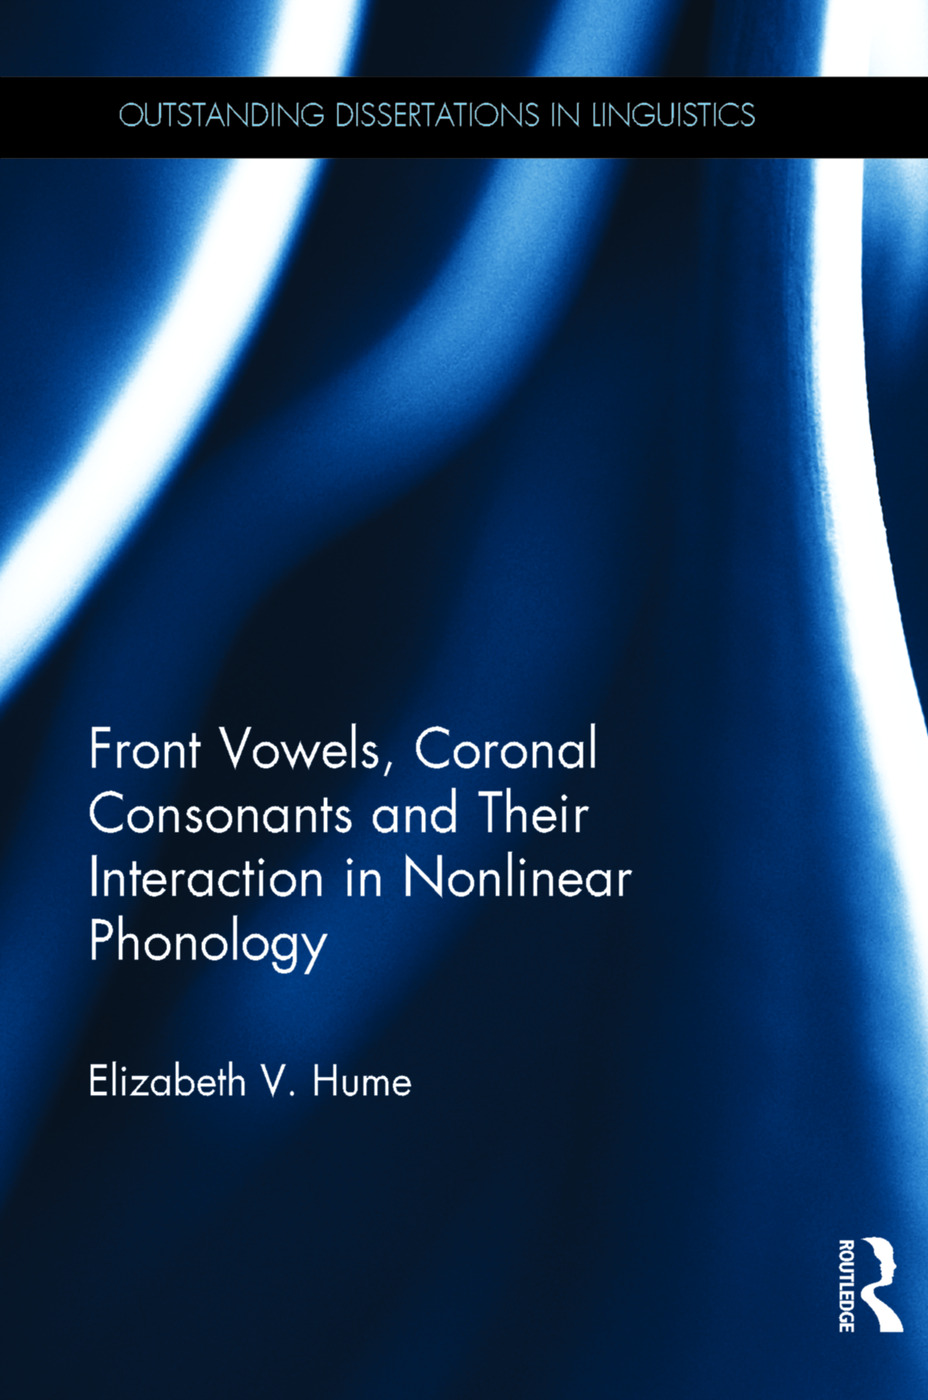 Front Vowels, Coronal Consonants and Their Interaction in Nonlinear Phonology: 1st Edition (Hardback) book cover